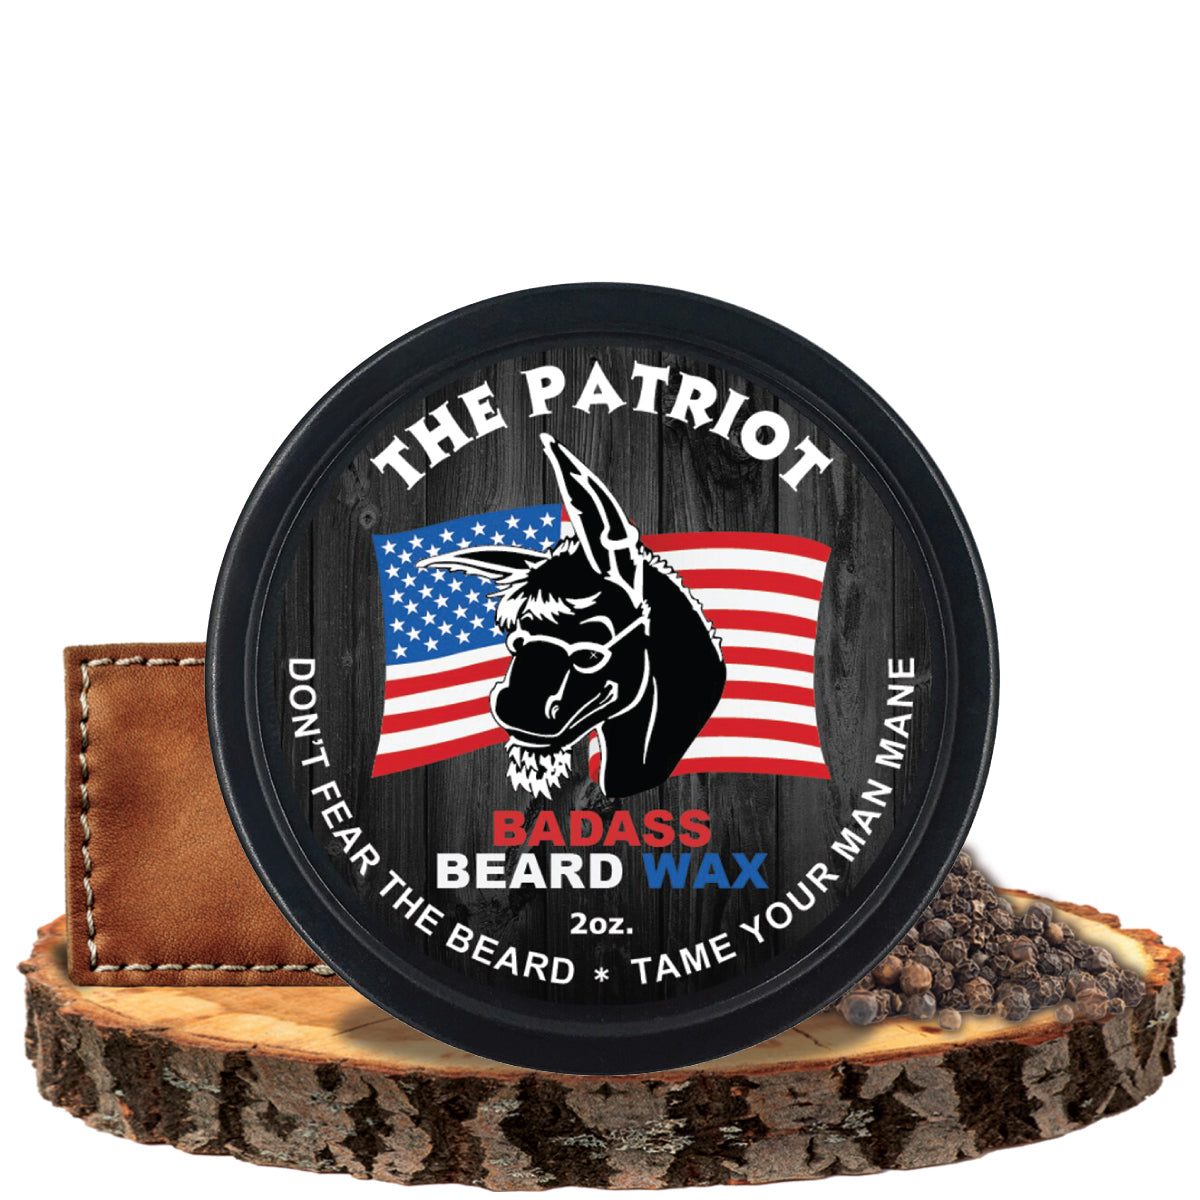 Badass Beard Wax - The Patriot